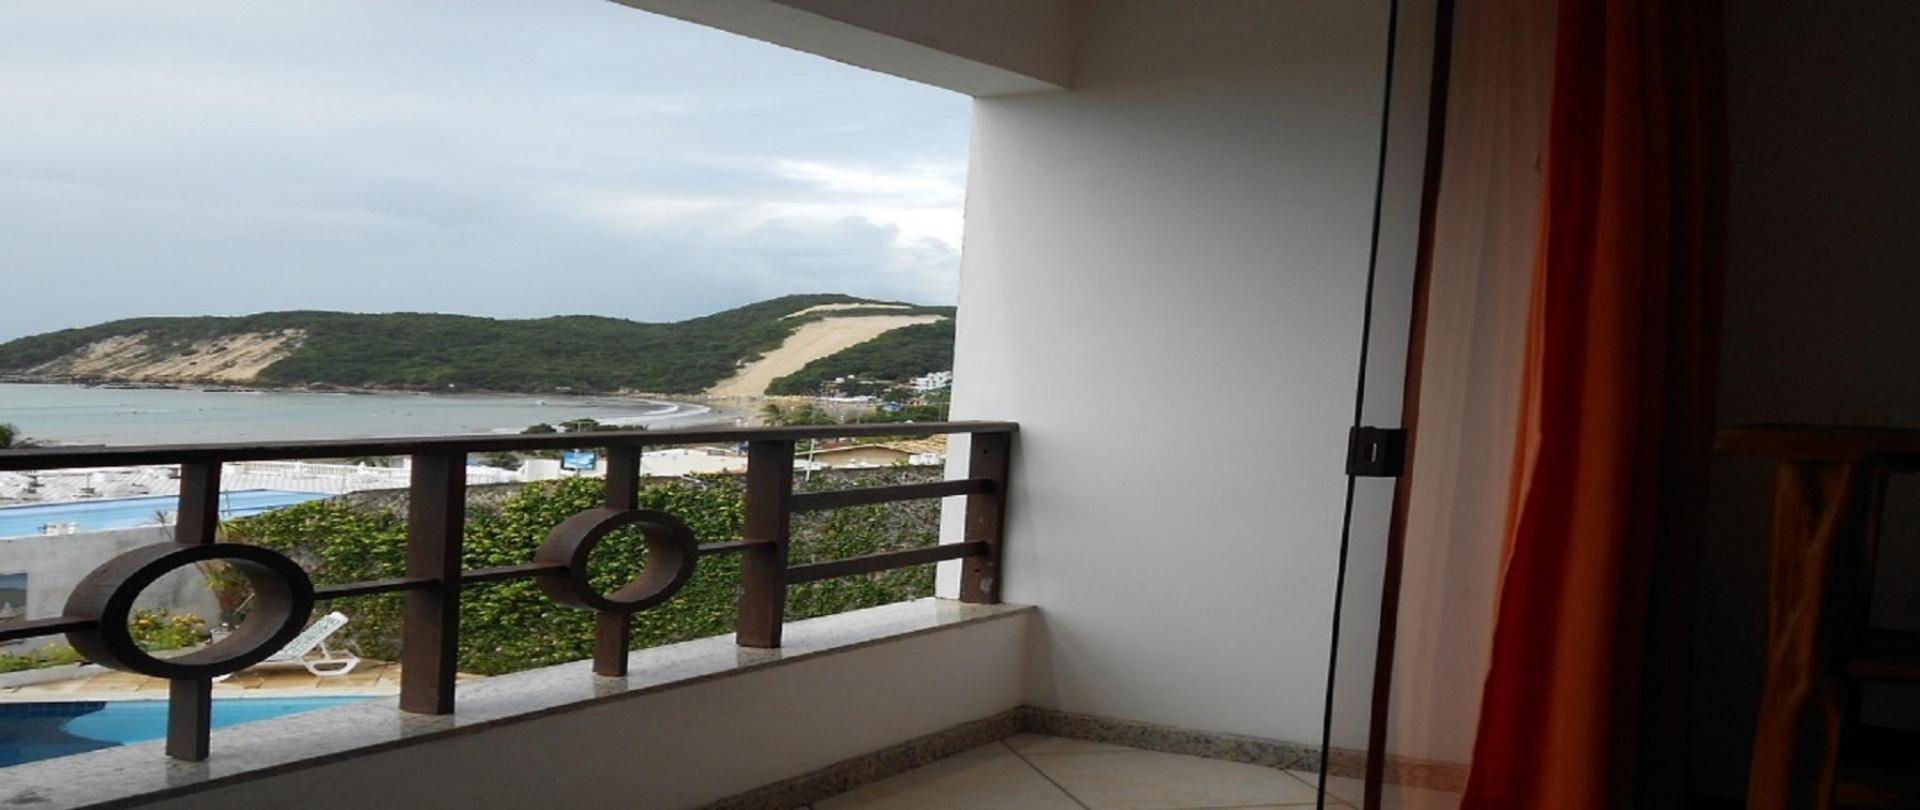 Flat com varanda vista mar e Morro do Careca